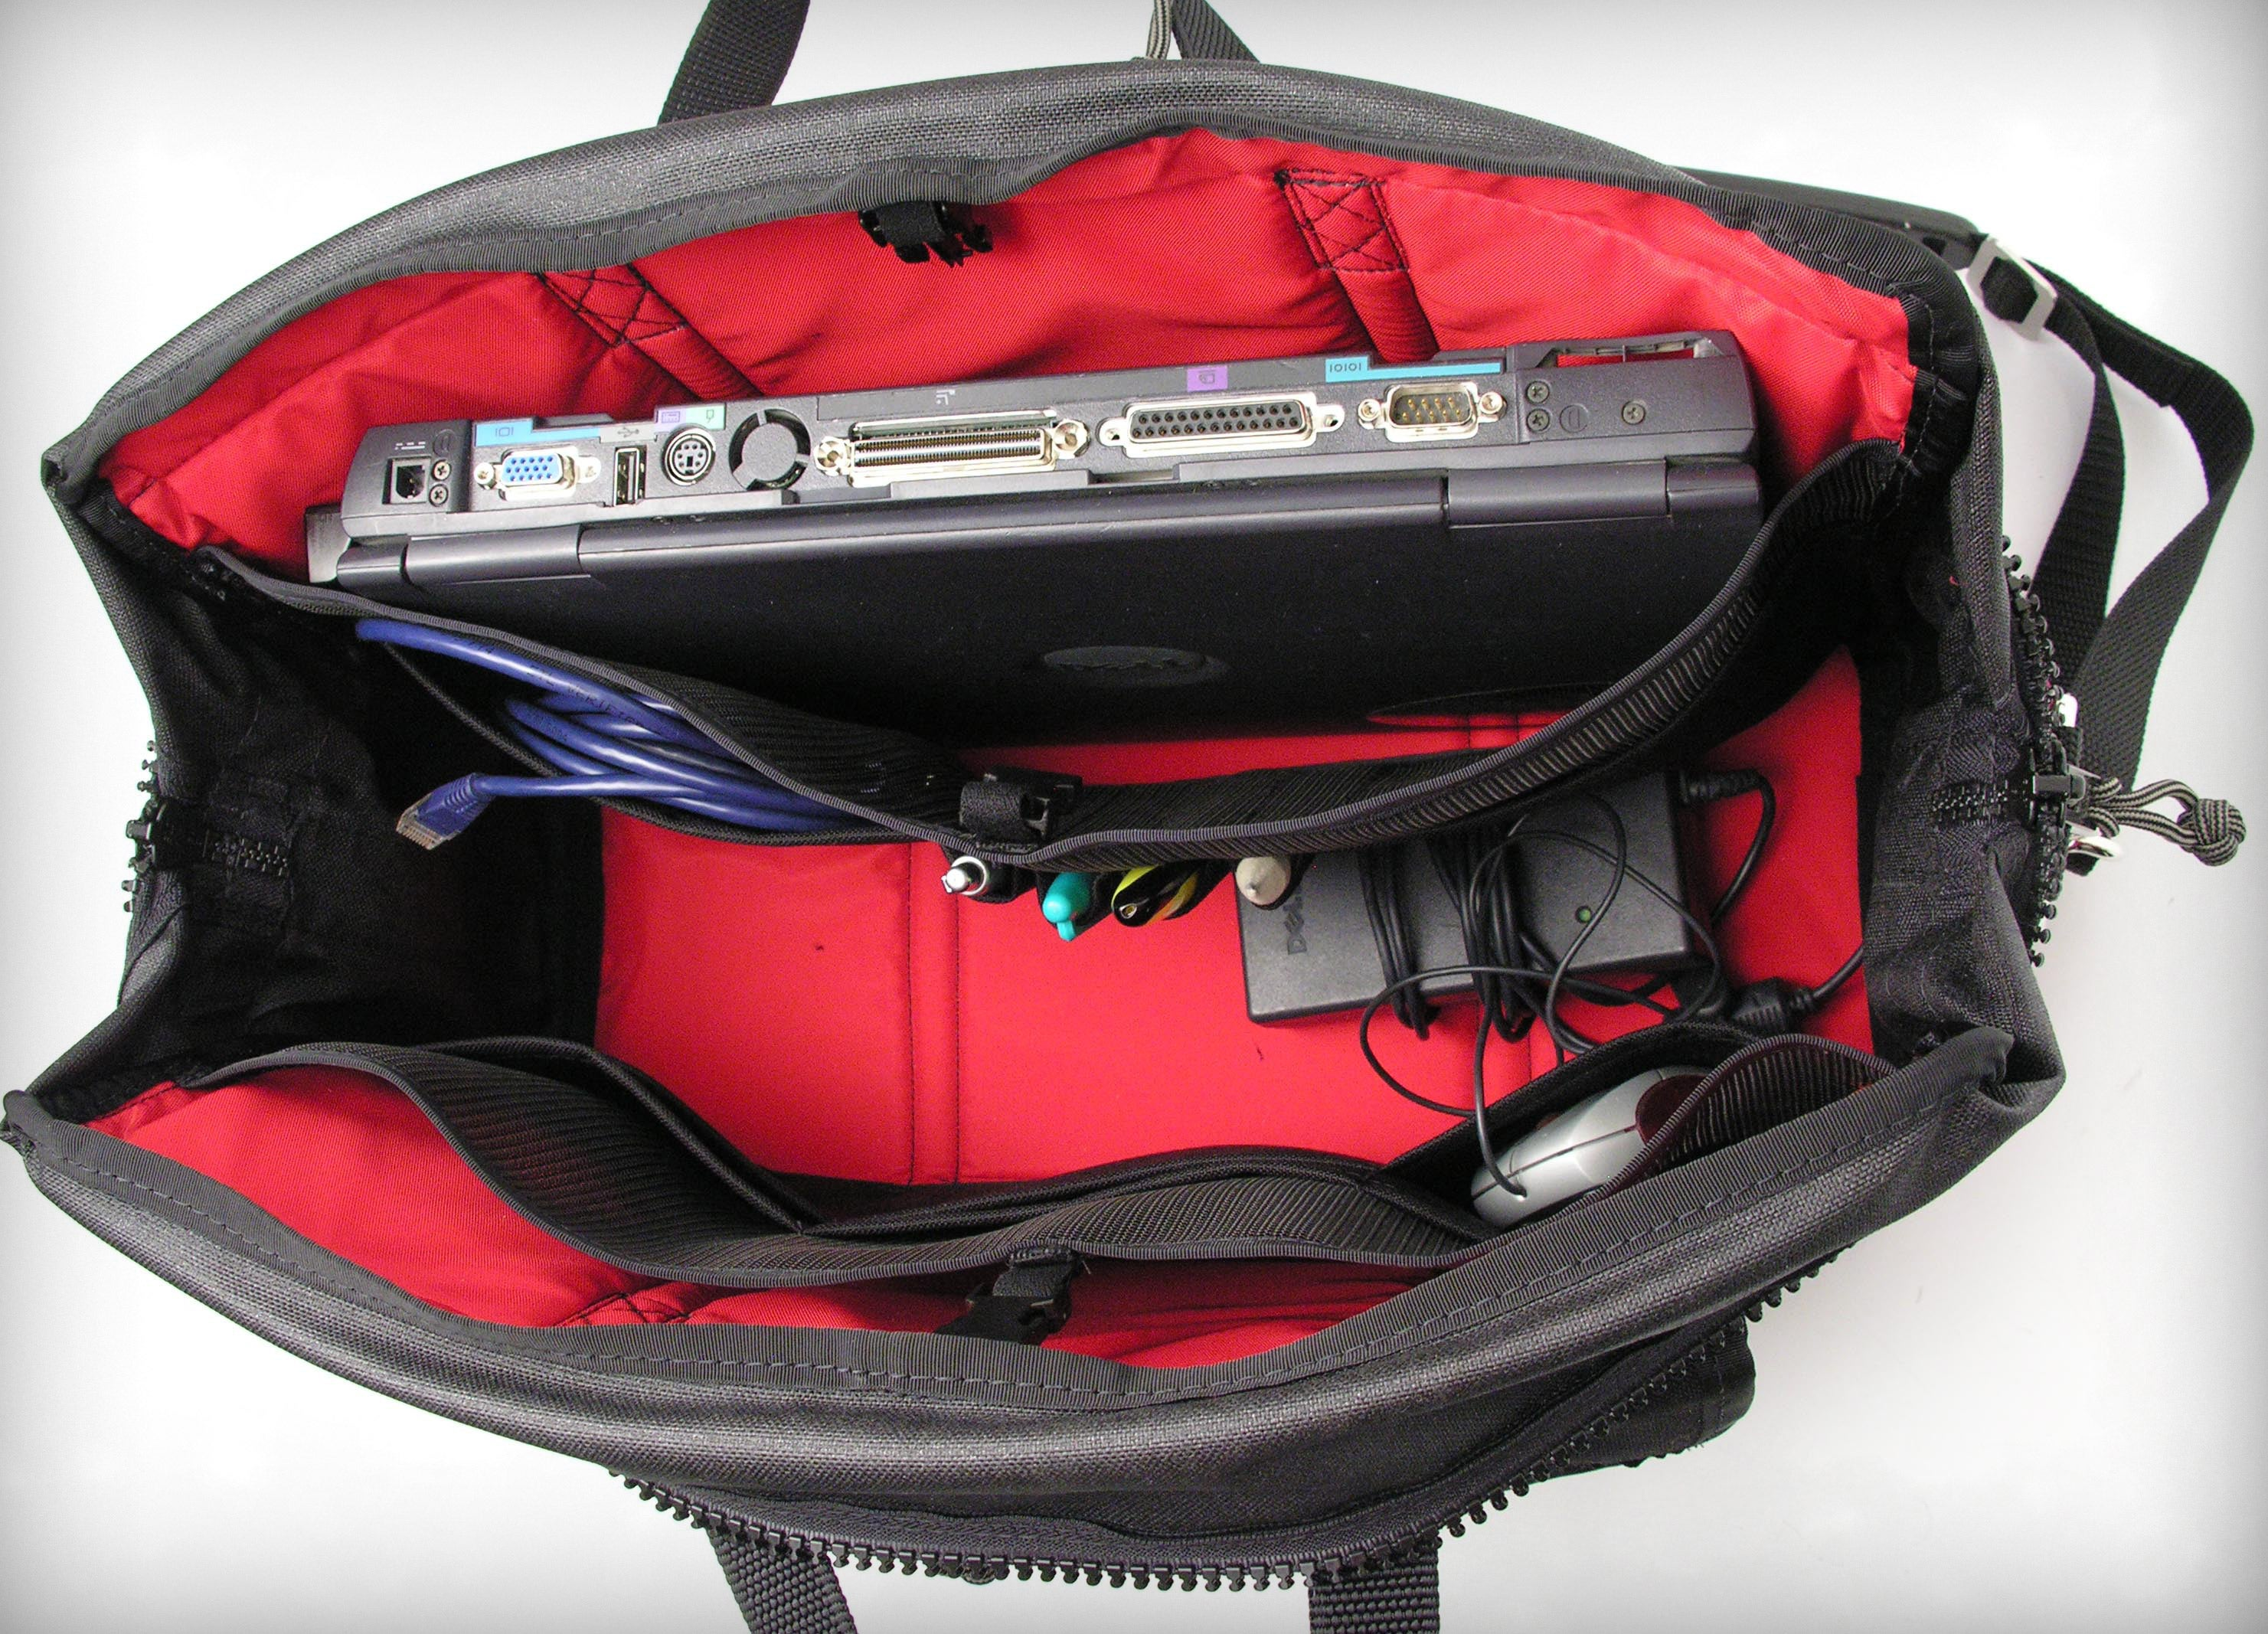 Field Test: Keep Calm With This Carry-on